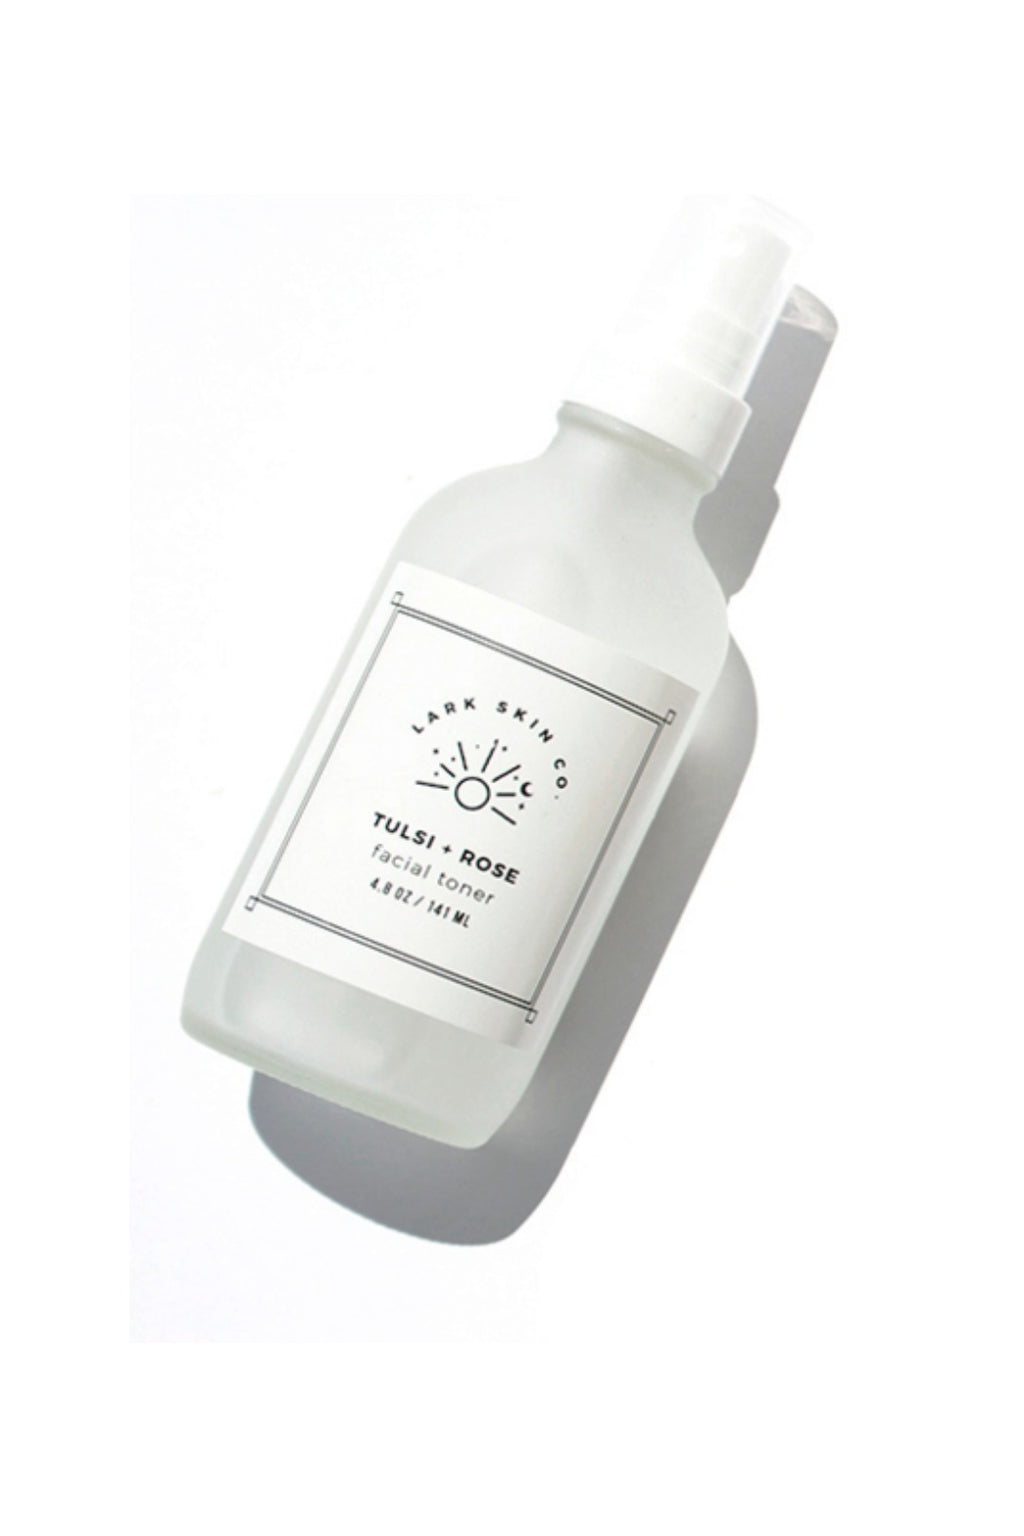 Lark Skin Co Facial Toner - Tulsi + Rose 4oz